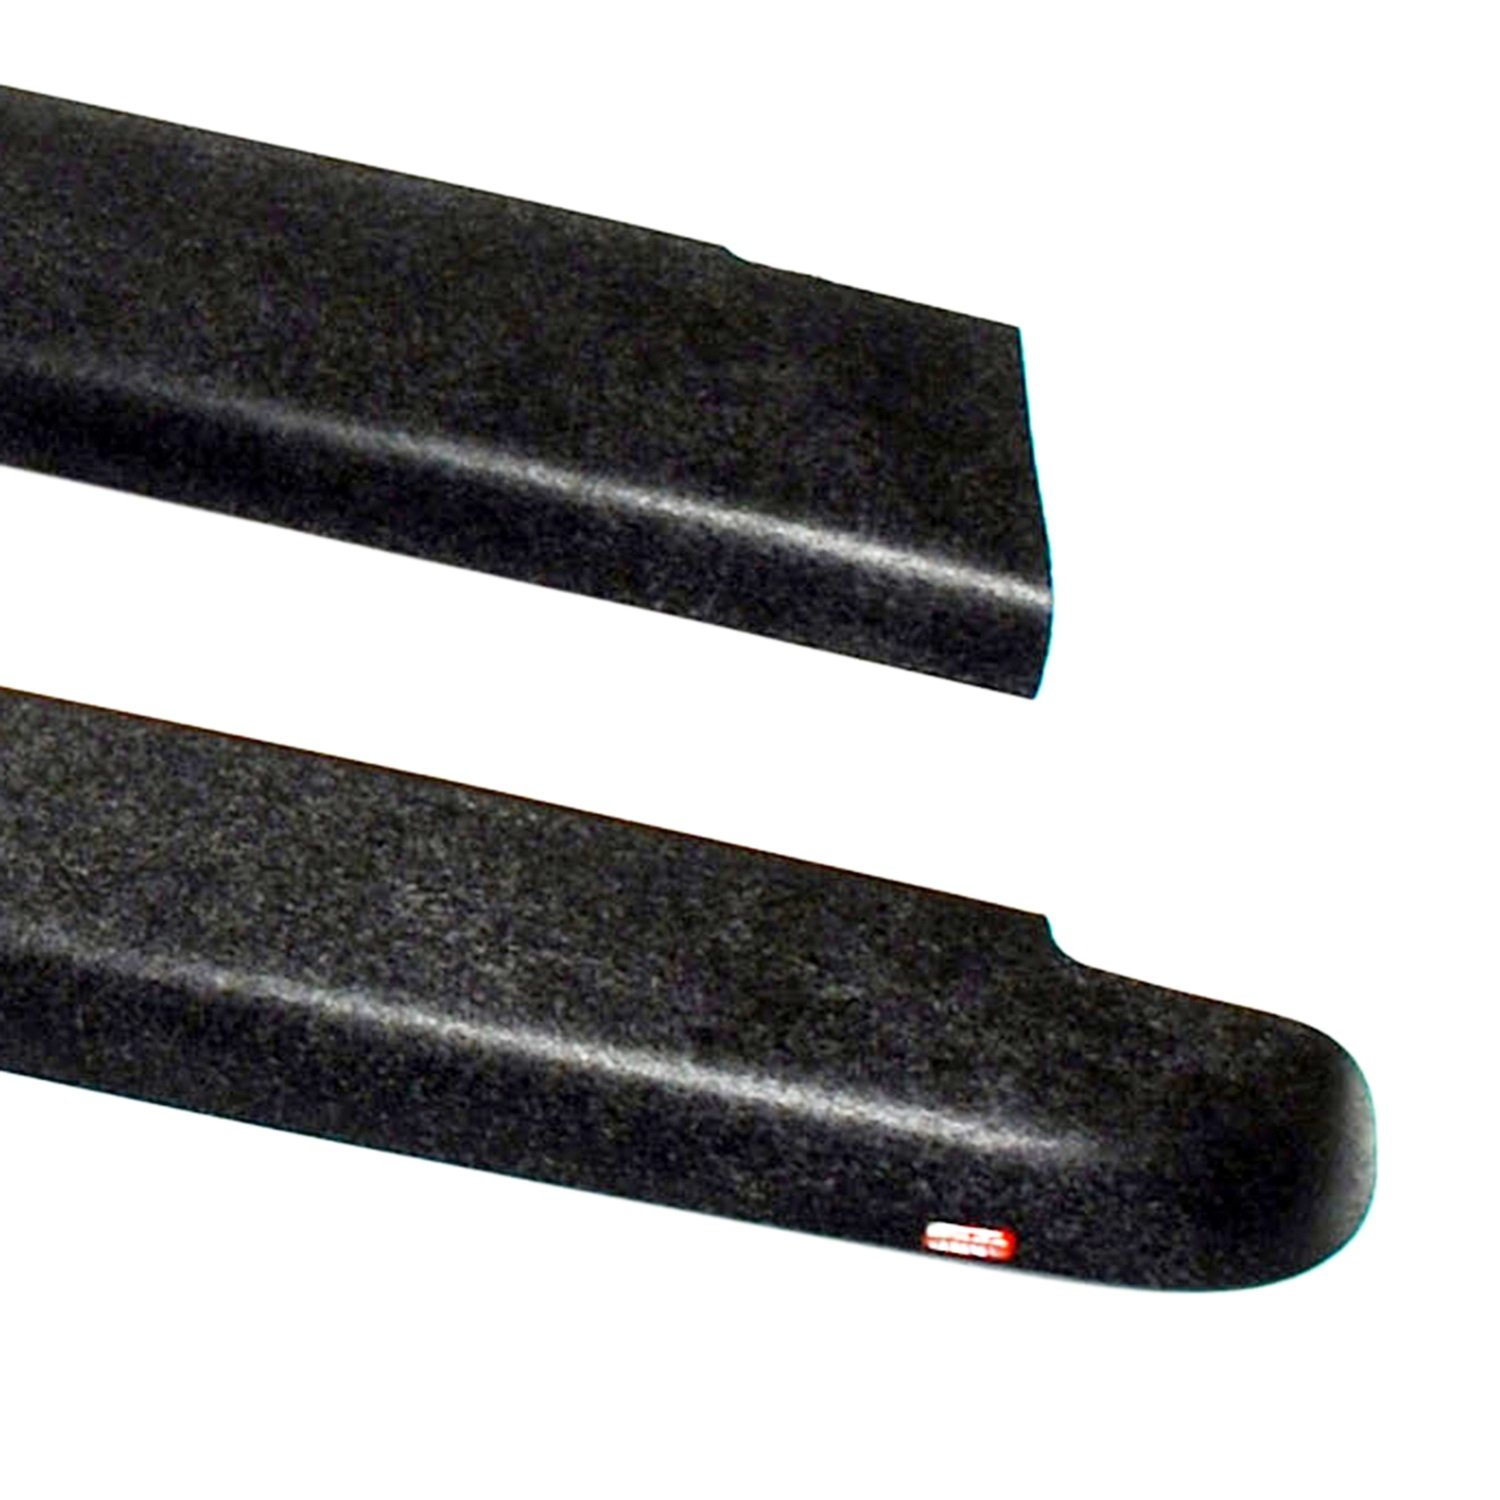 Wade 72-40104 Truck Bed Rail Caps Black Smooth Finish without Stake Holes for 2007-2014 Chevrolet Silverado 1500 2500 with 6.5ft bed (Set of 2) Westin